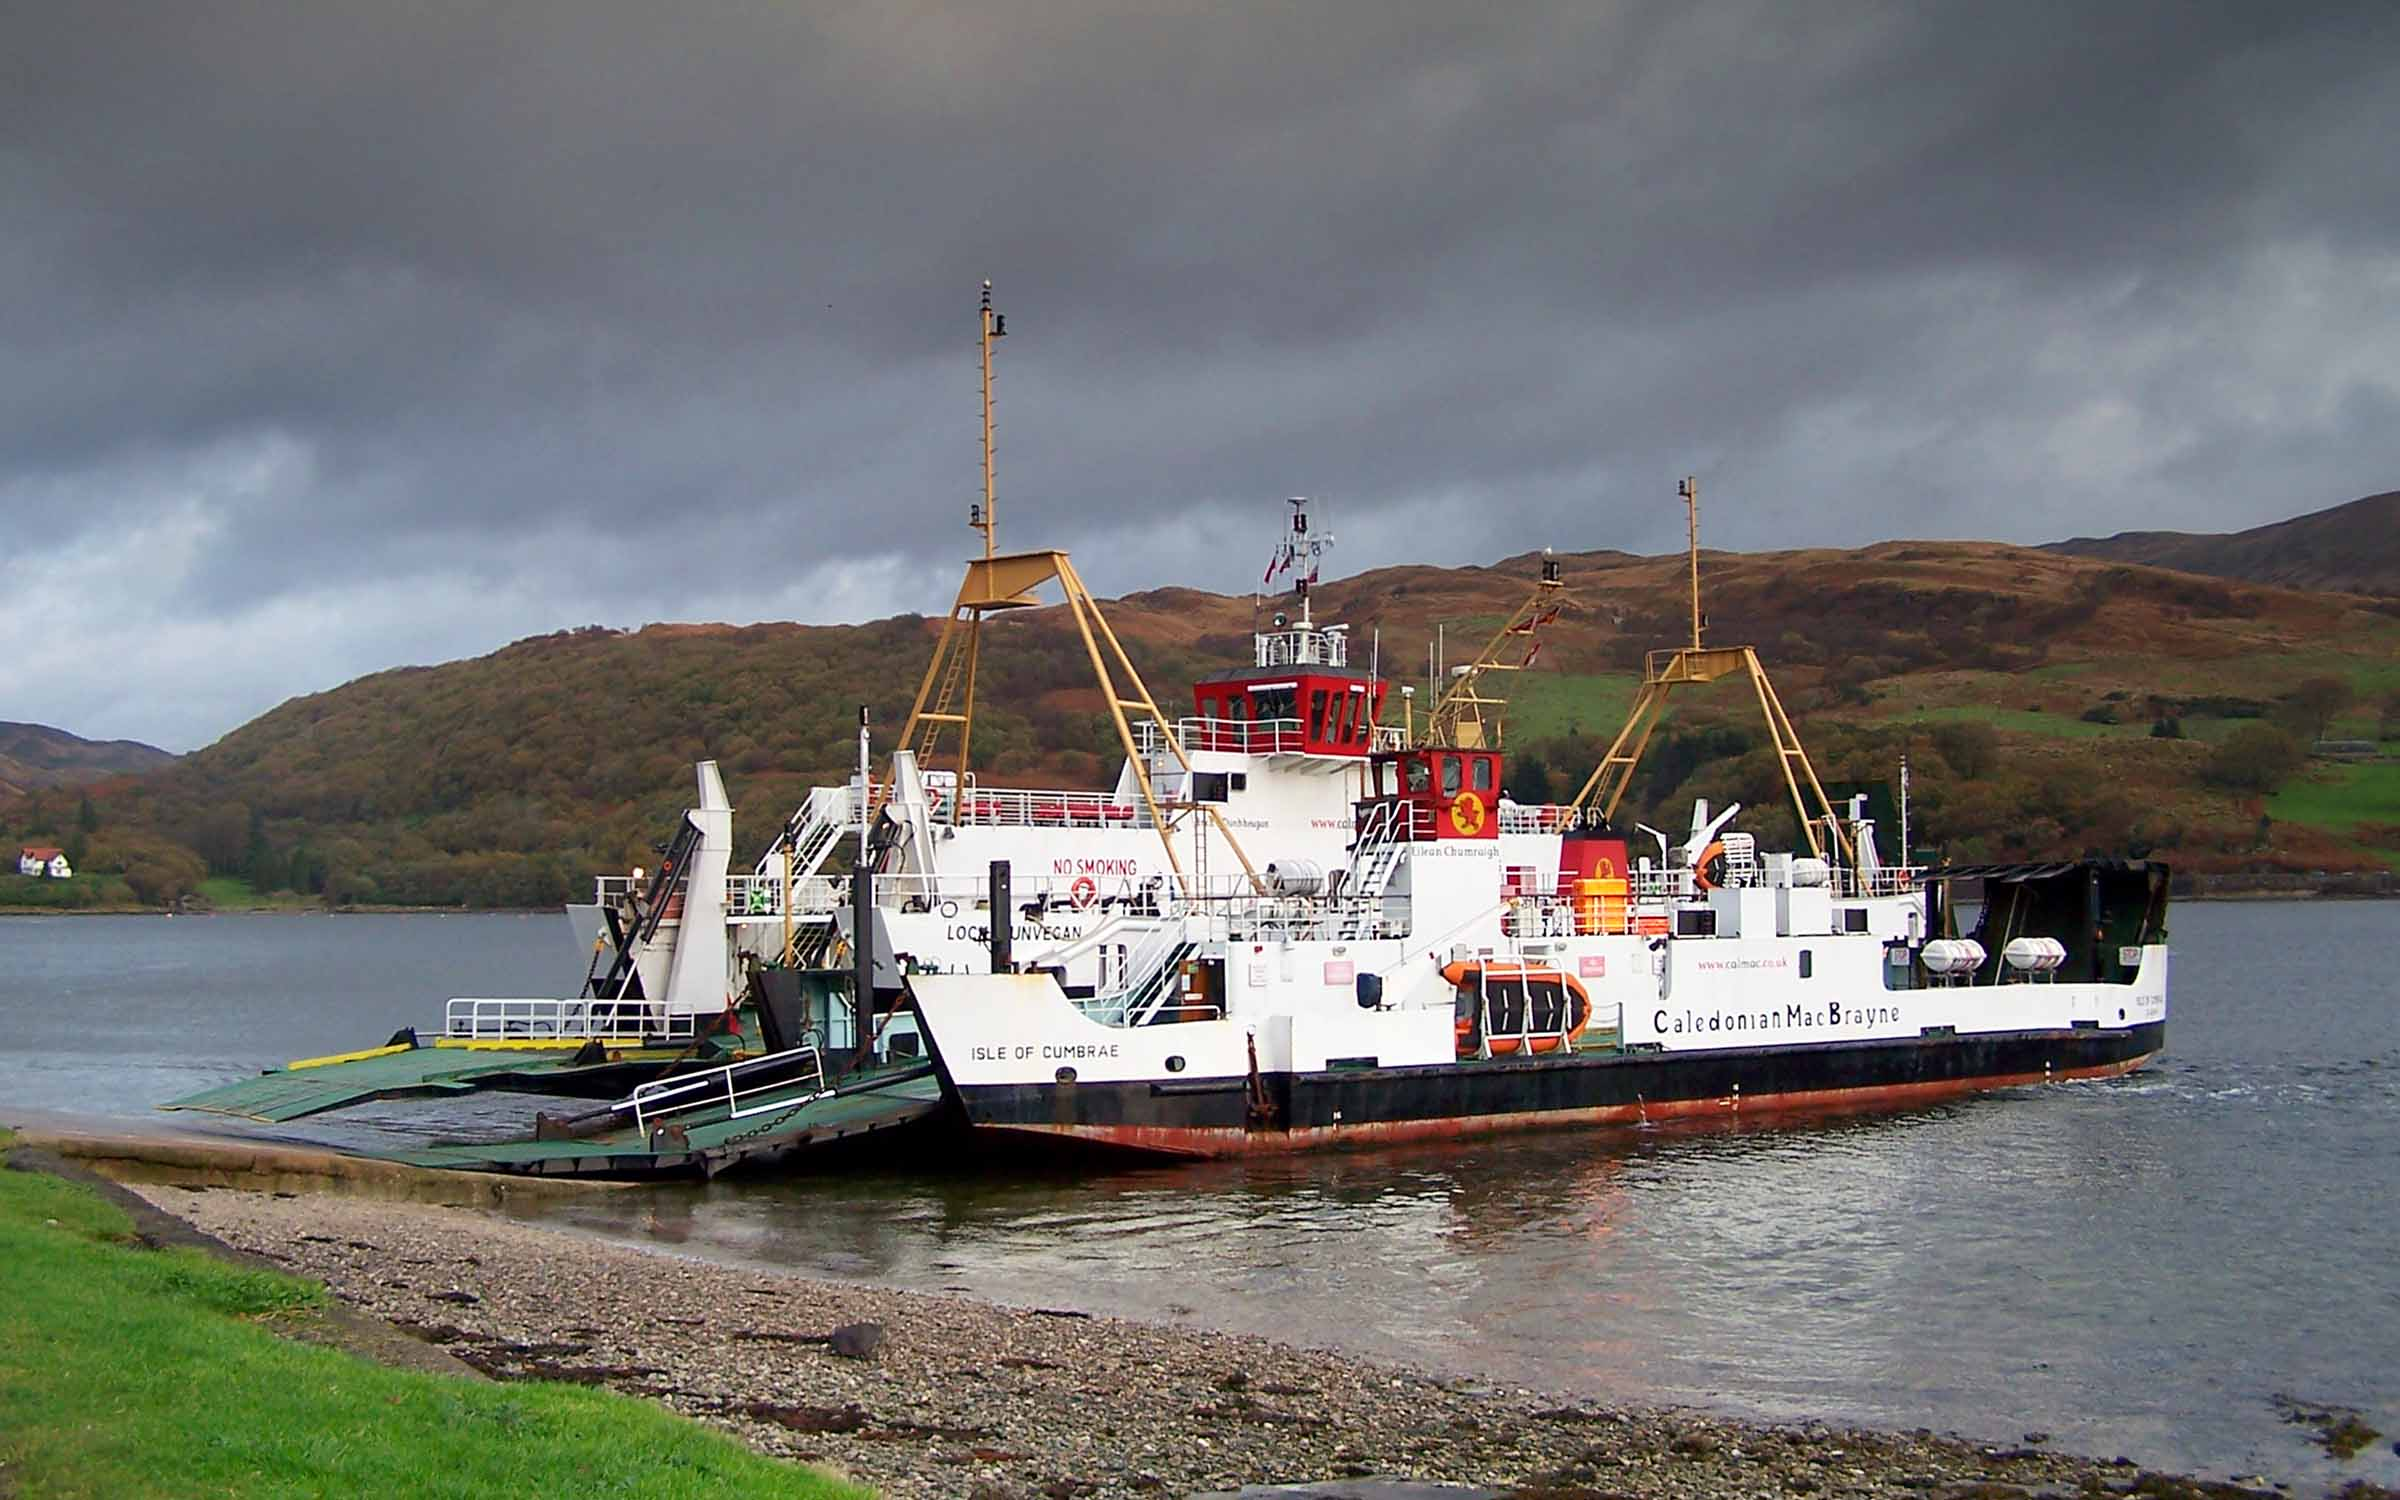 Loch Dunvegan and Isle of Cumbrae at Rhubodach (Ships of CalMac)